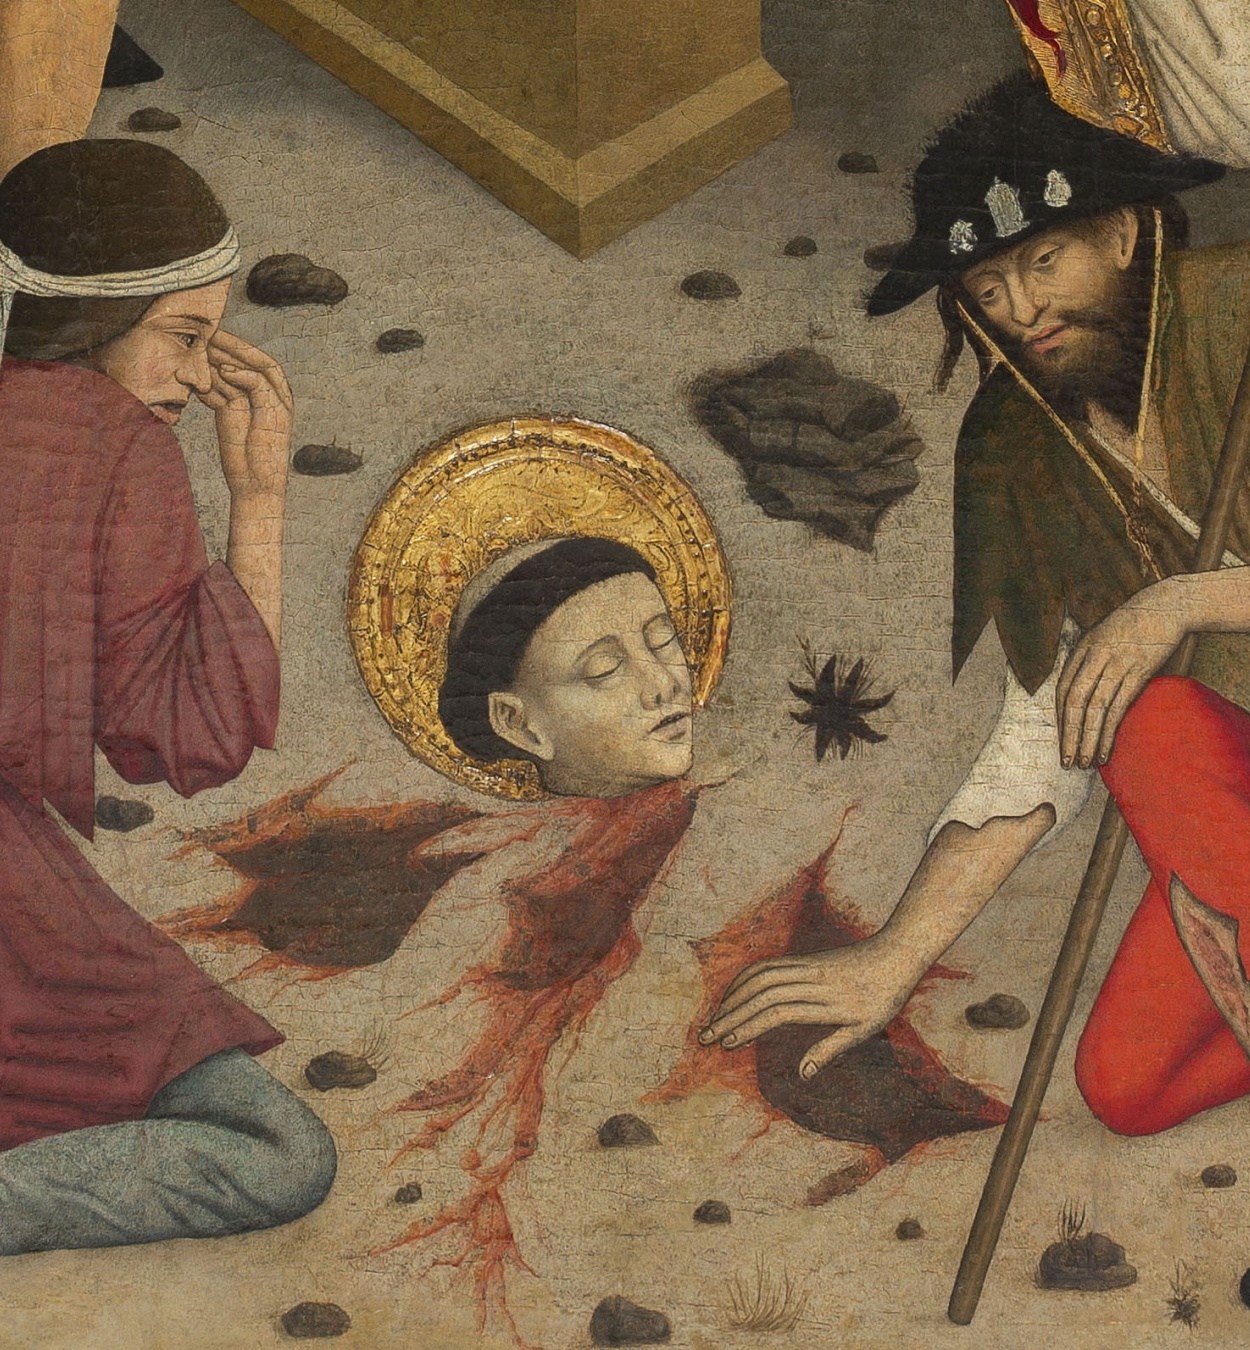 Lluís Dalmau - The Beheading of Saint Baudilus - circa 1448 [2]